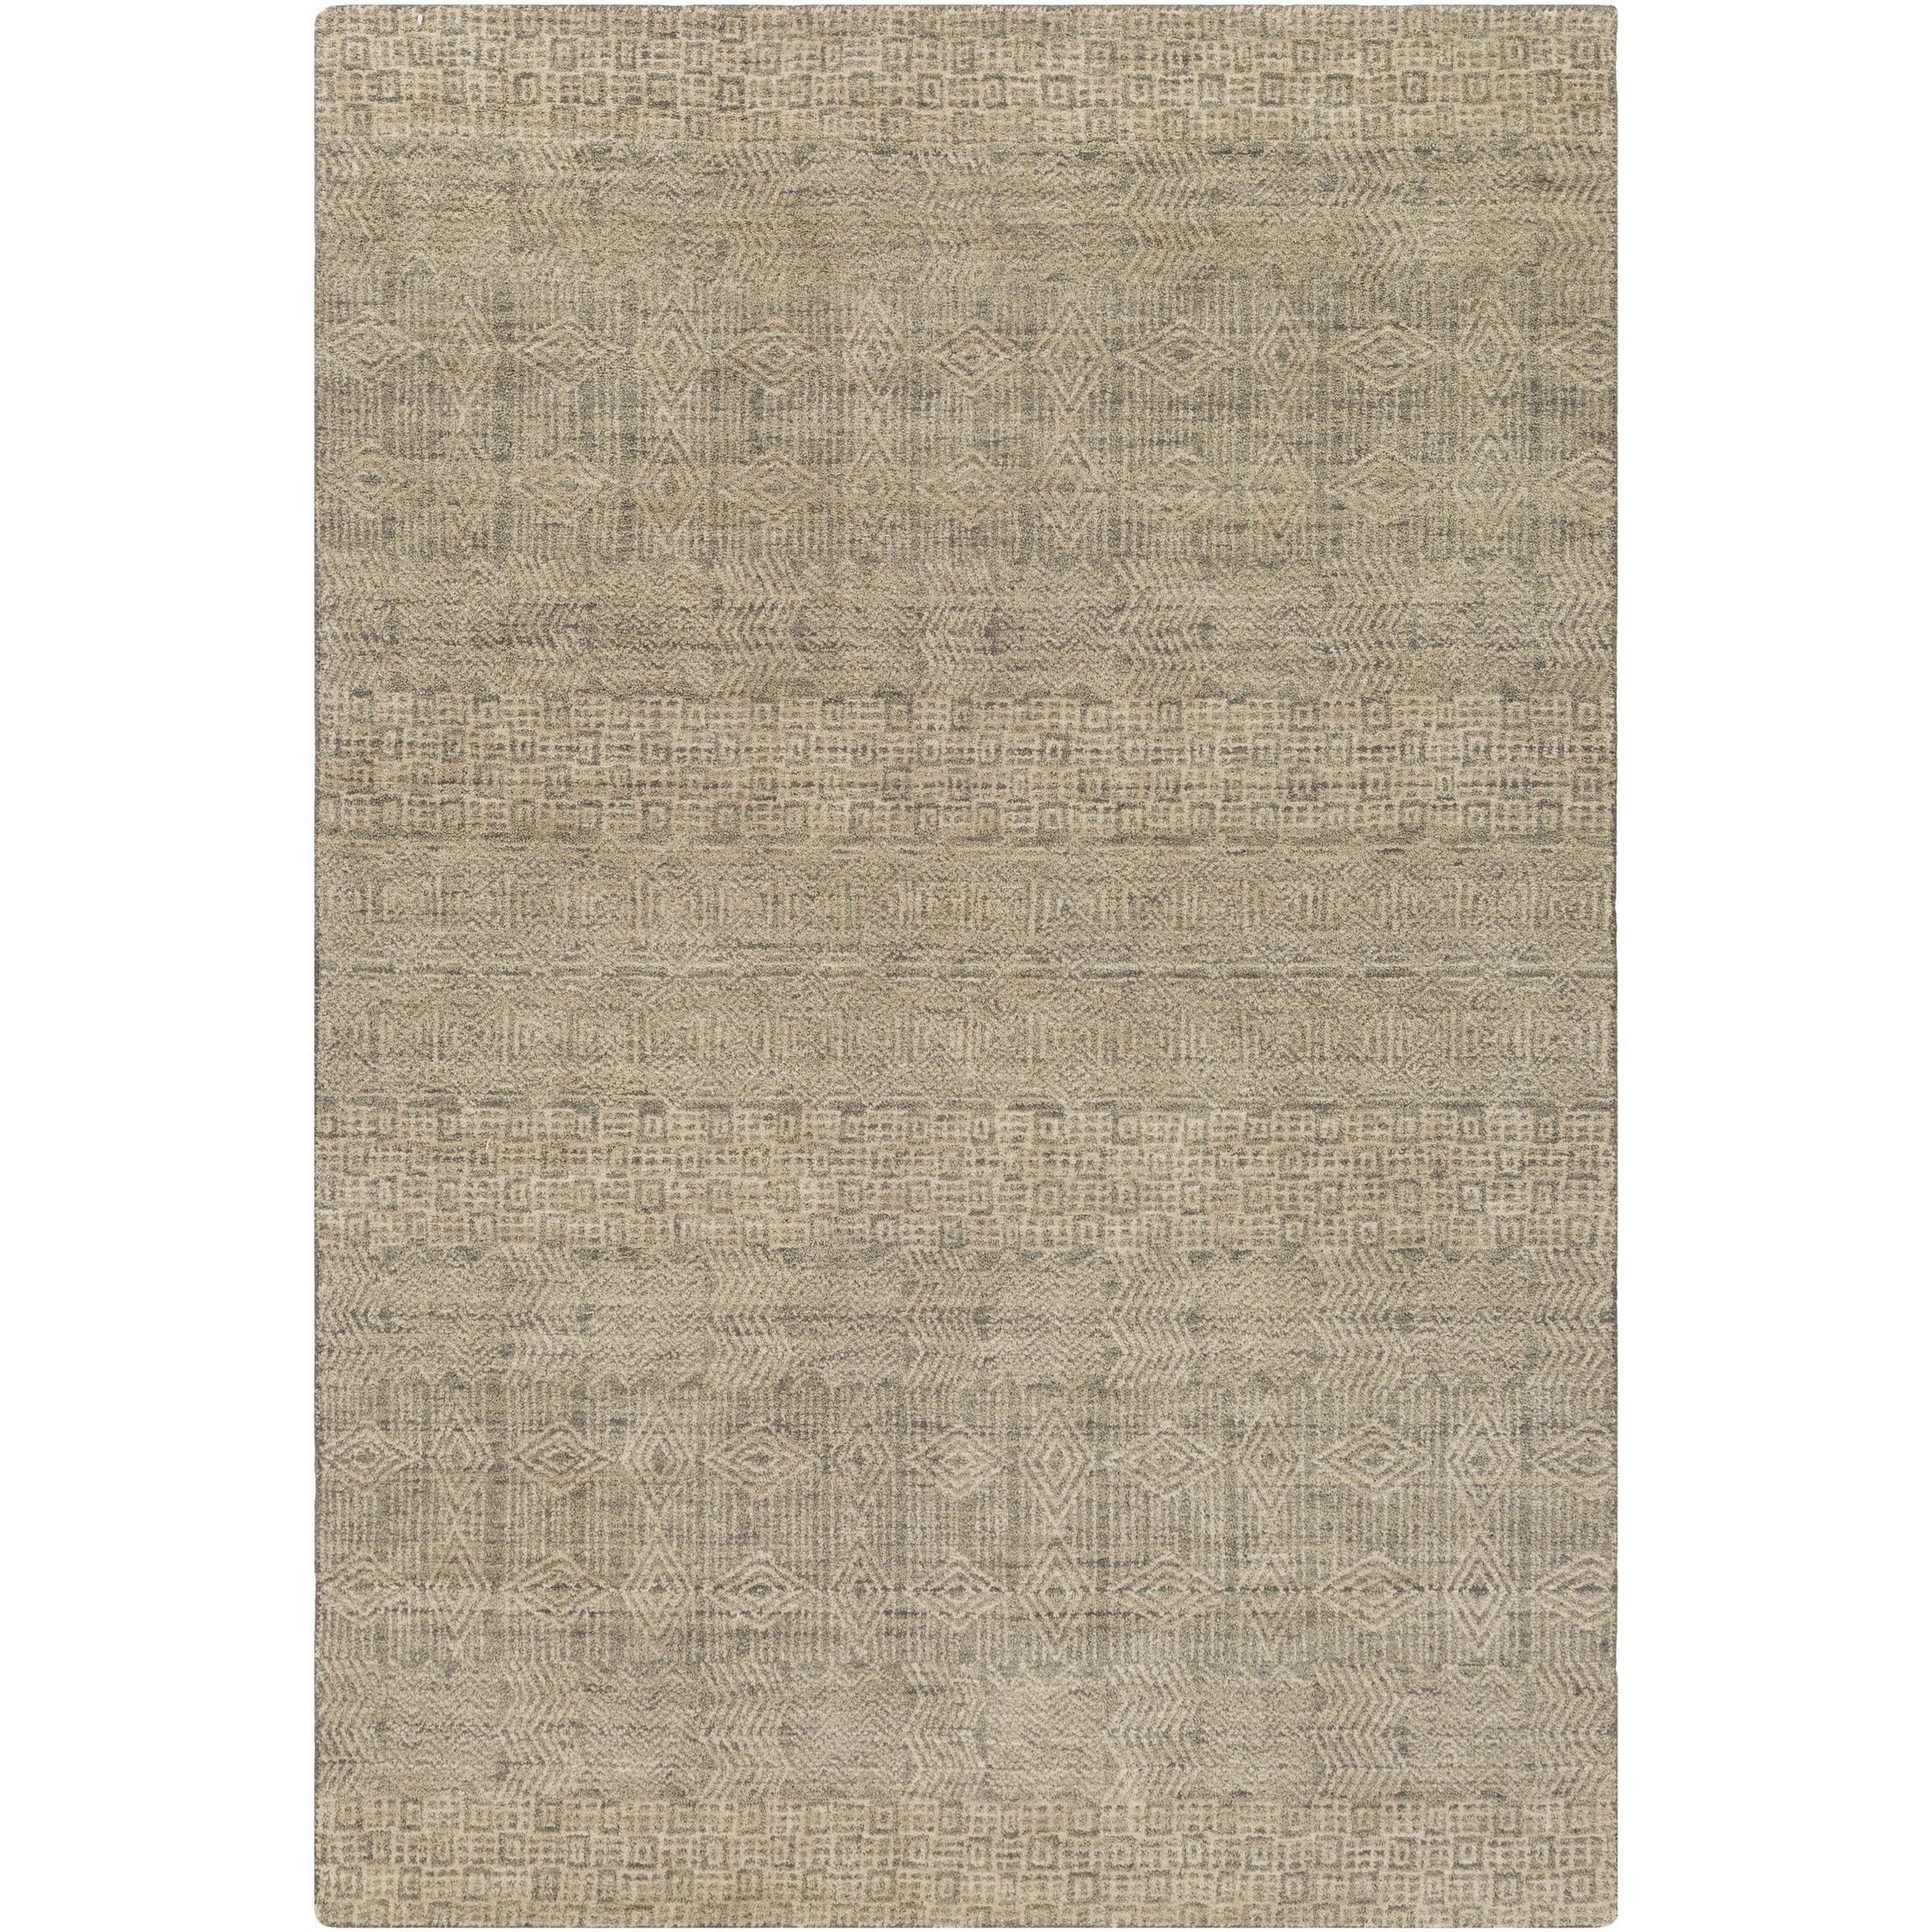 Neville Hand-Knotted Dark Green/Beige Area Rug Rug Size: Rectangle 2' x 3'